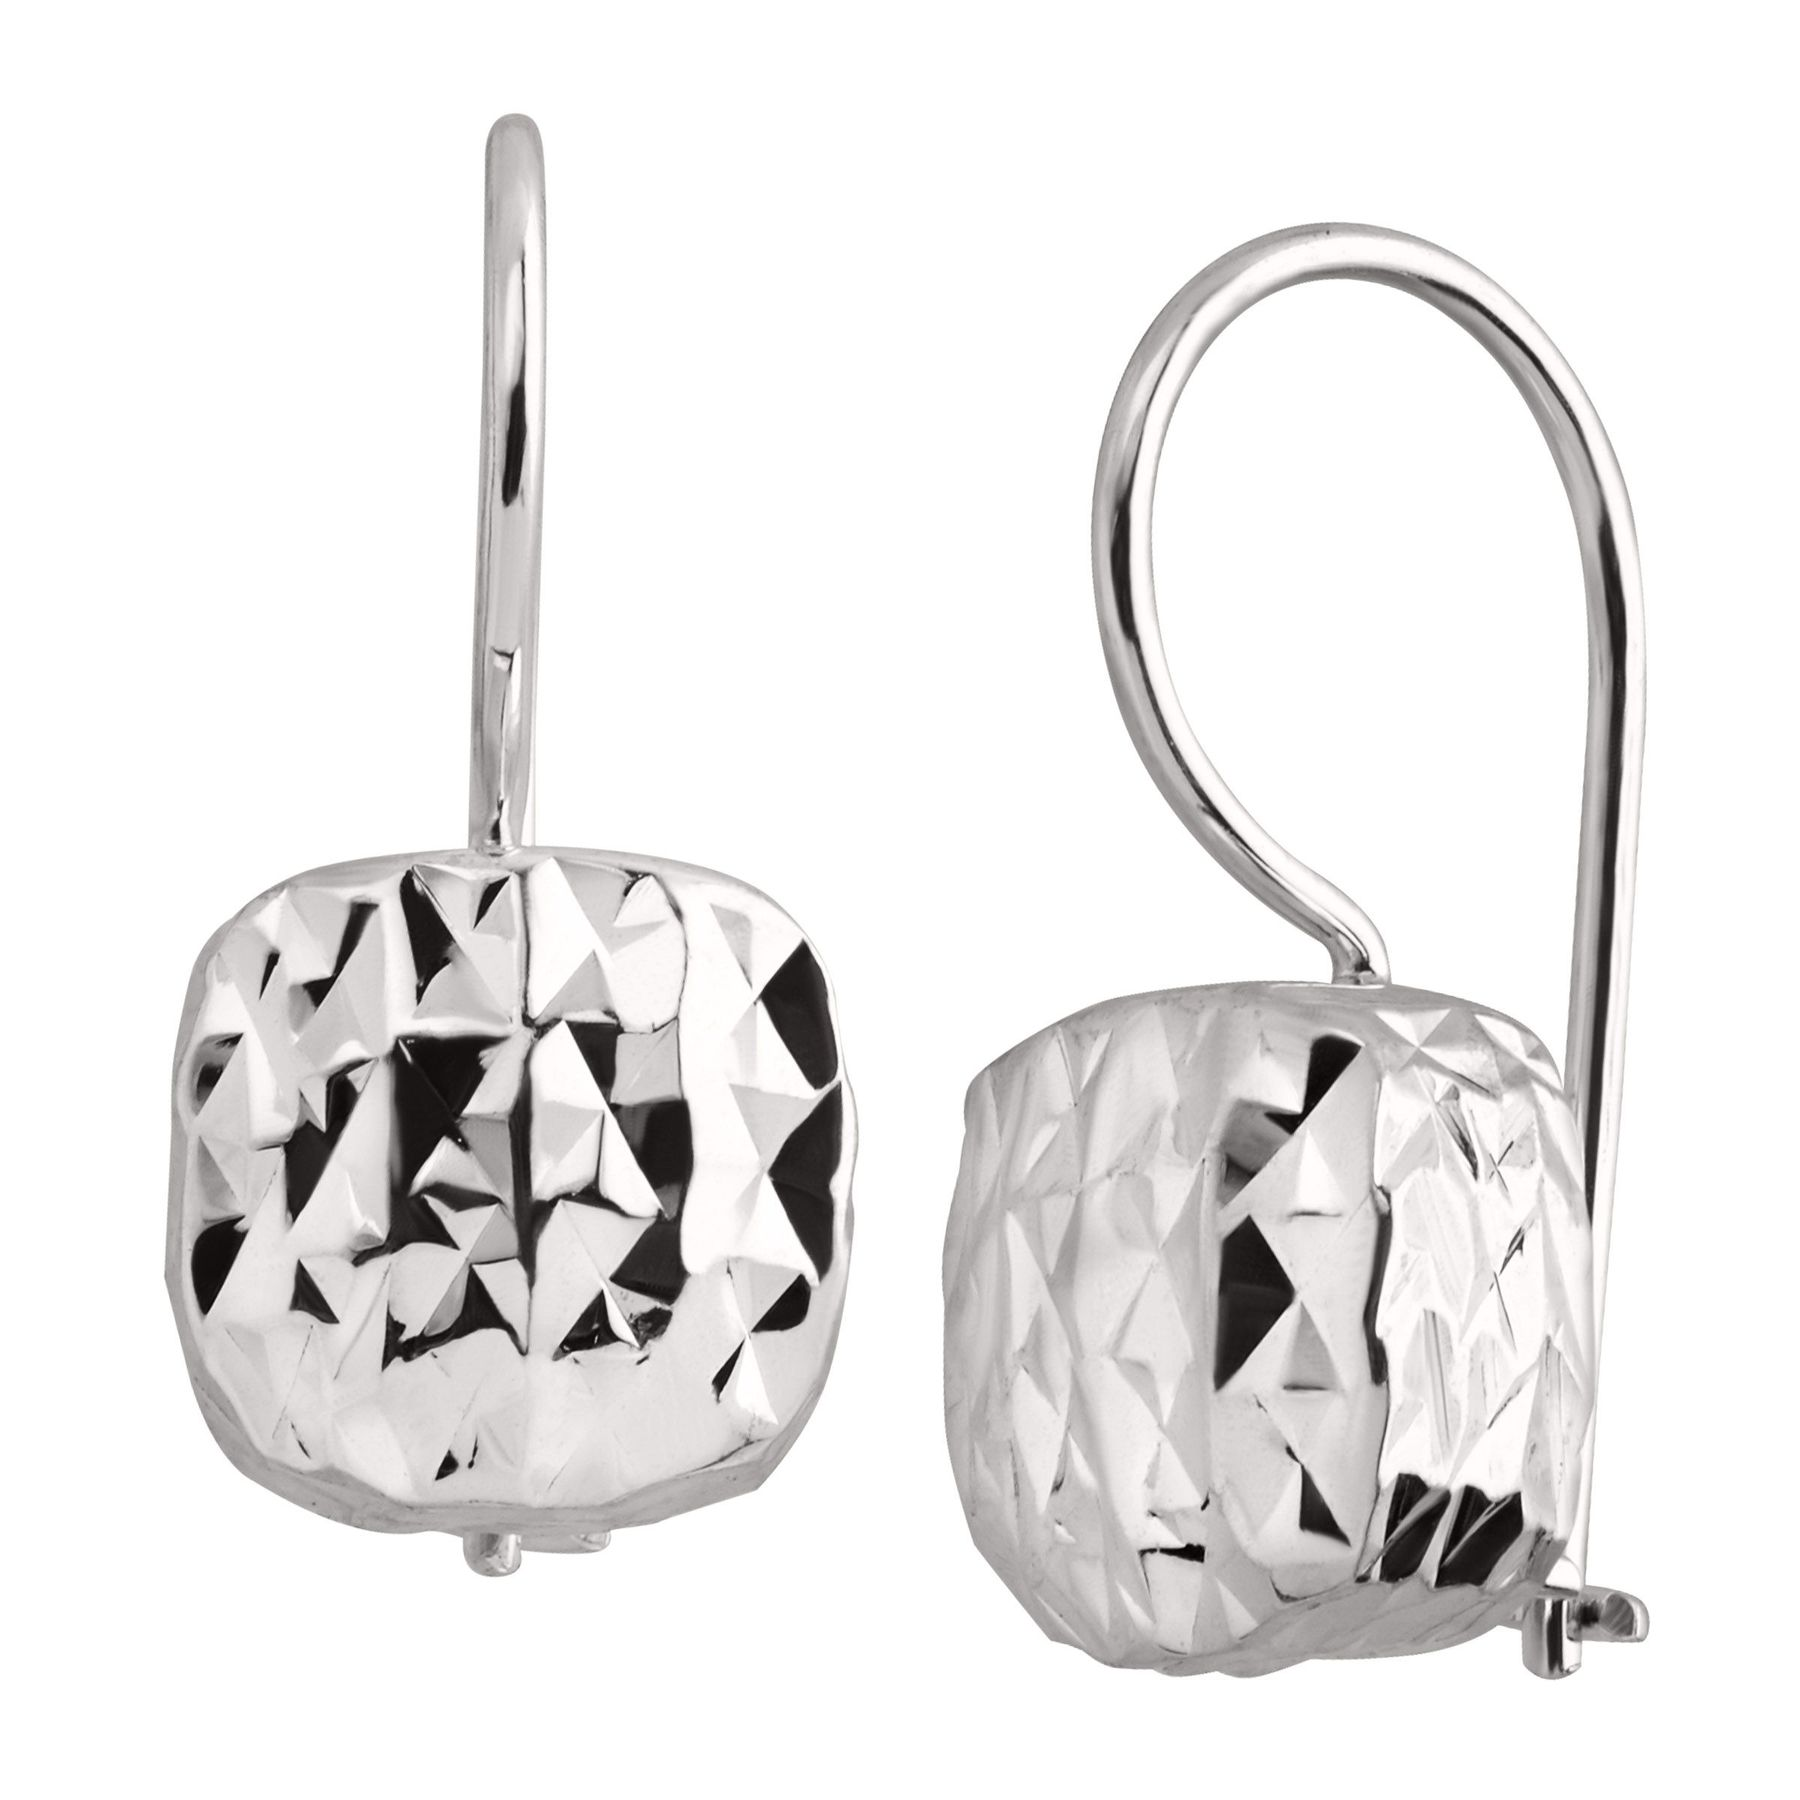 32 Round Crystal Ear Studs 925 Sterling Silver Nb Of Crystal Stones